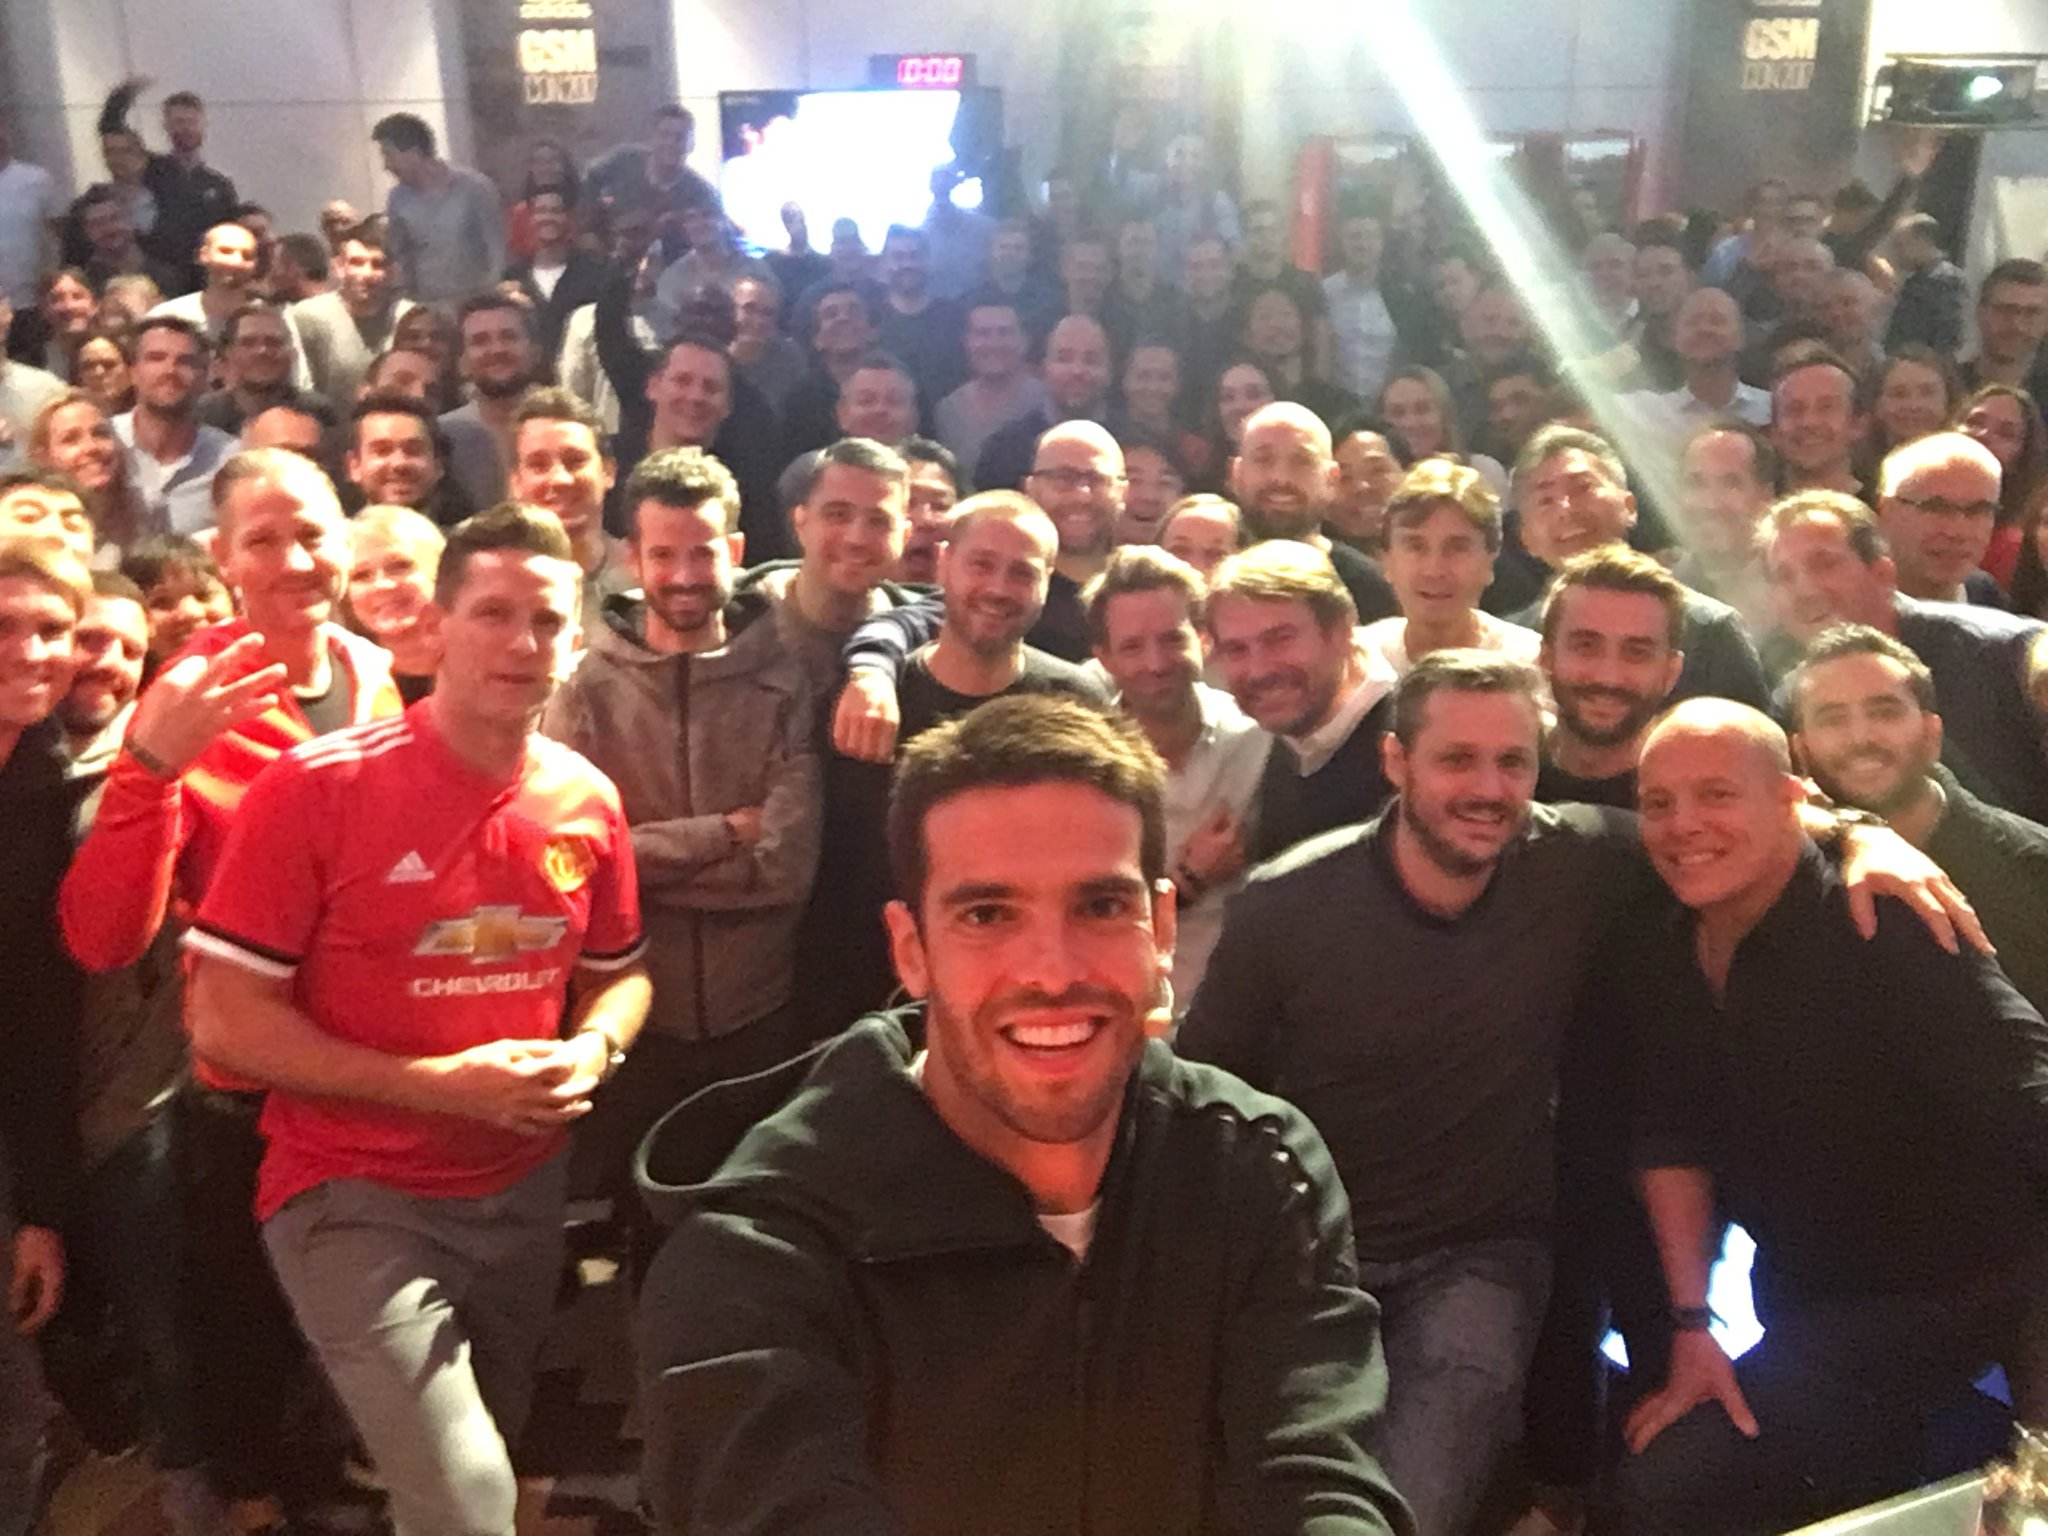 We're in Amsterdam! �������� A fun day sharing my experiences with my @adidasfootball family!⚽�� #HereToCreate https://t.co/yvTpOf0HuT